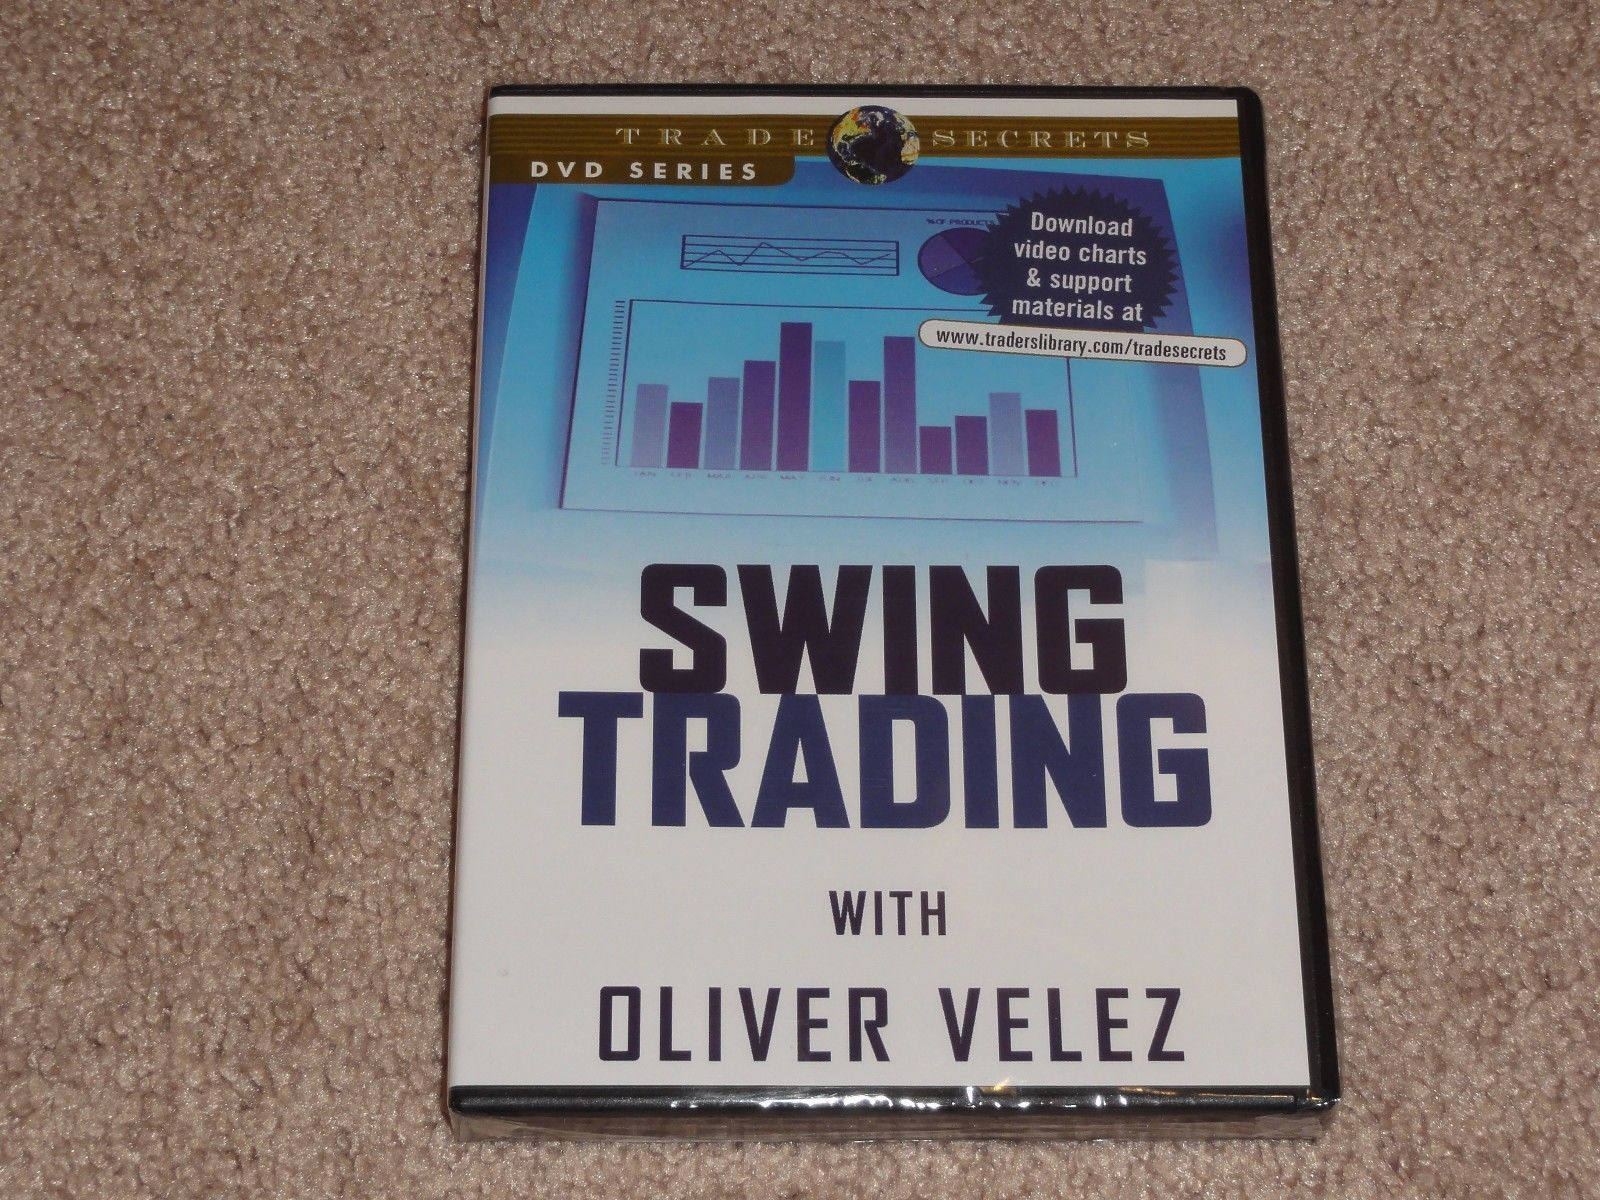 Oliver Velez Swing Trading DVD stock market options academy simpler online qqqq